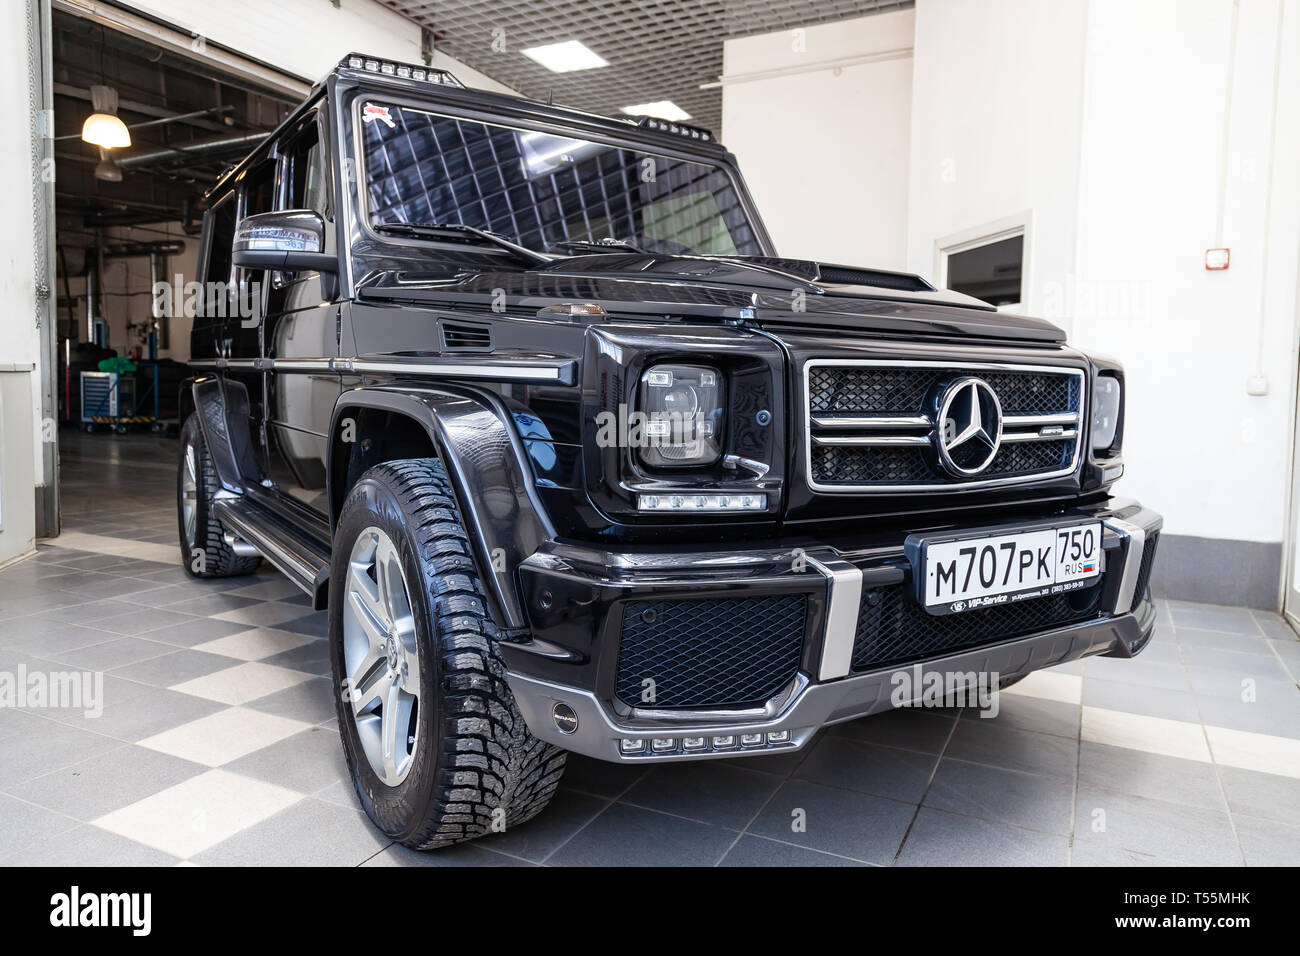 Novosibirsk Russia 08 01 18 Front View Of Luxury Very Expensive New Black Mercedes Benz G Class 350d Car With Brabus Tuning Stands In The Washing Stock Photo Alamy